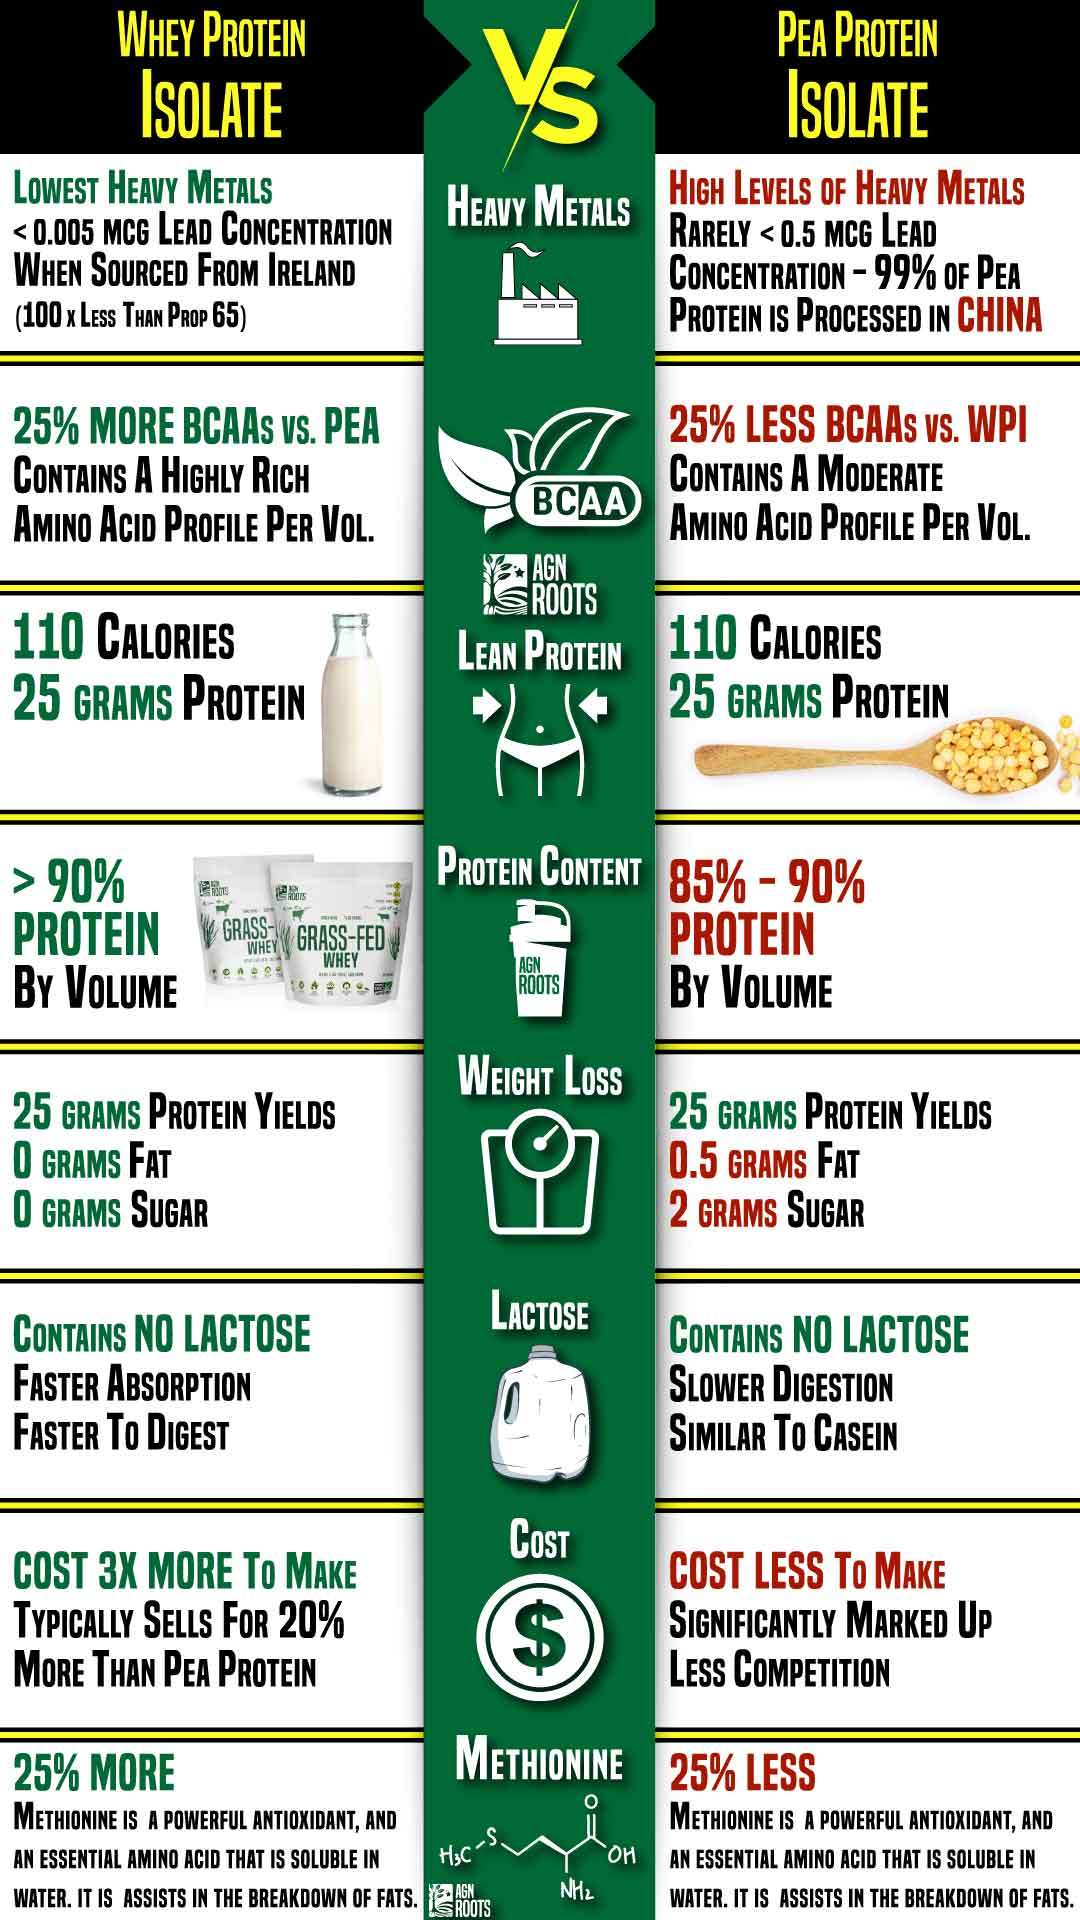 Pea Protein Isolate Versus Whey Protein Isolate - Infographic  Is pea protein better than whey protein?